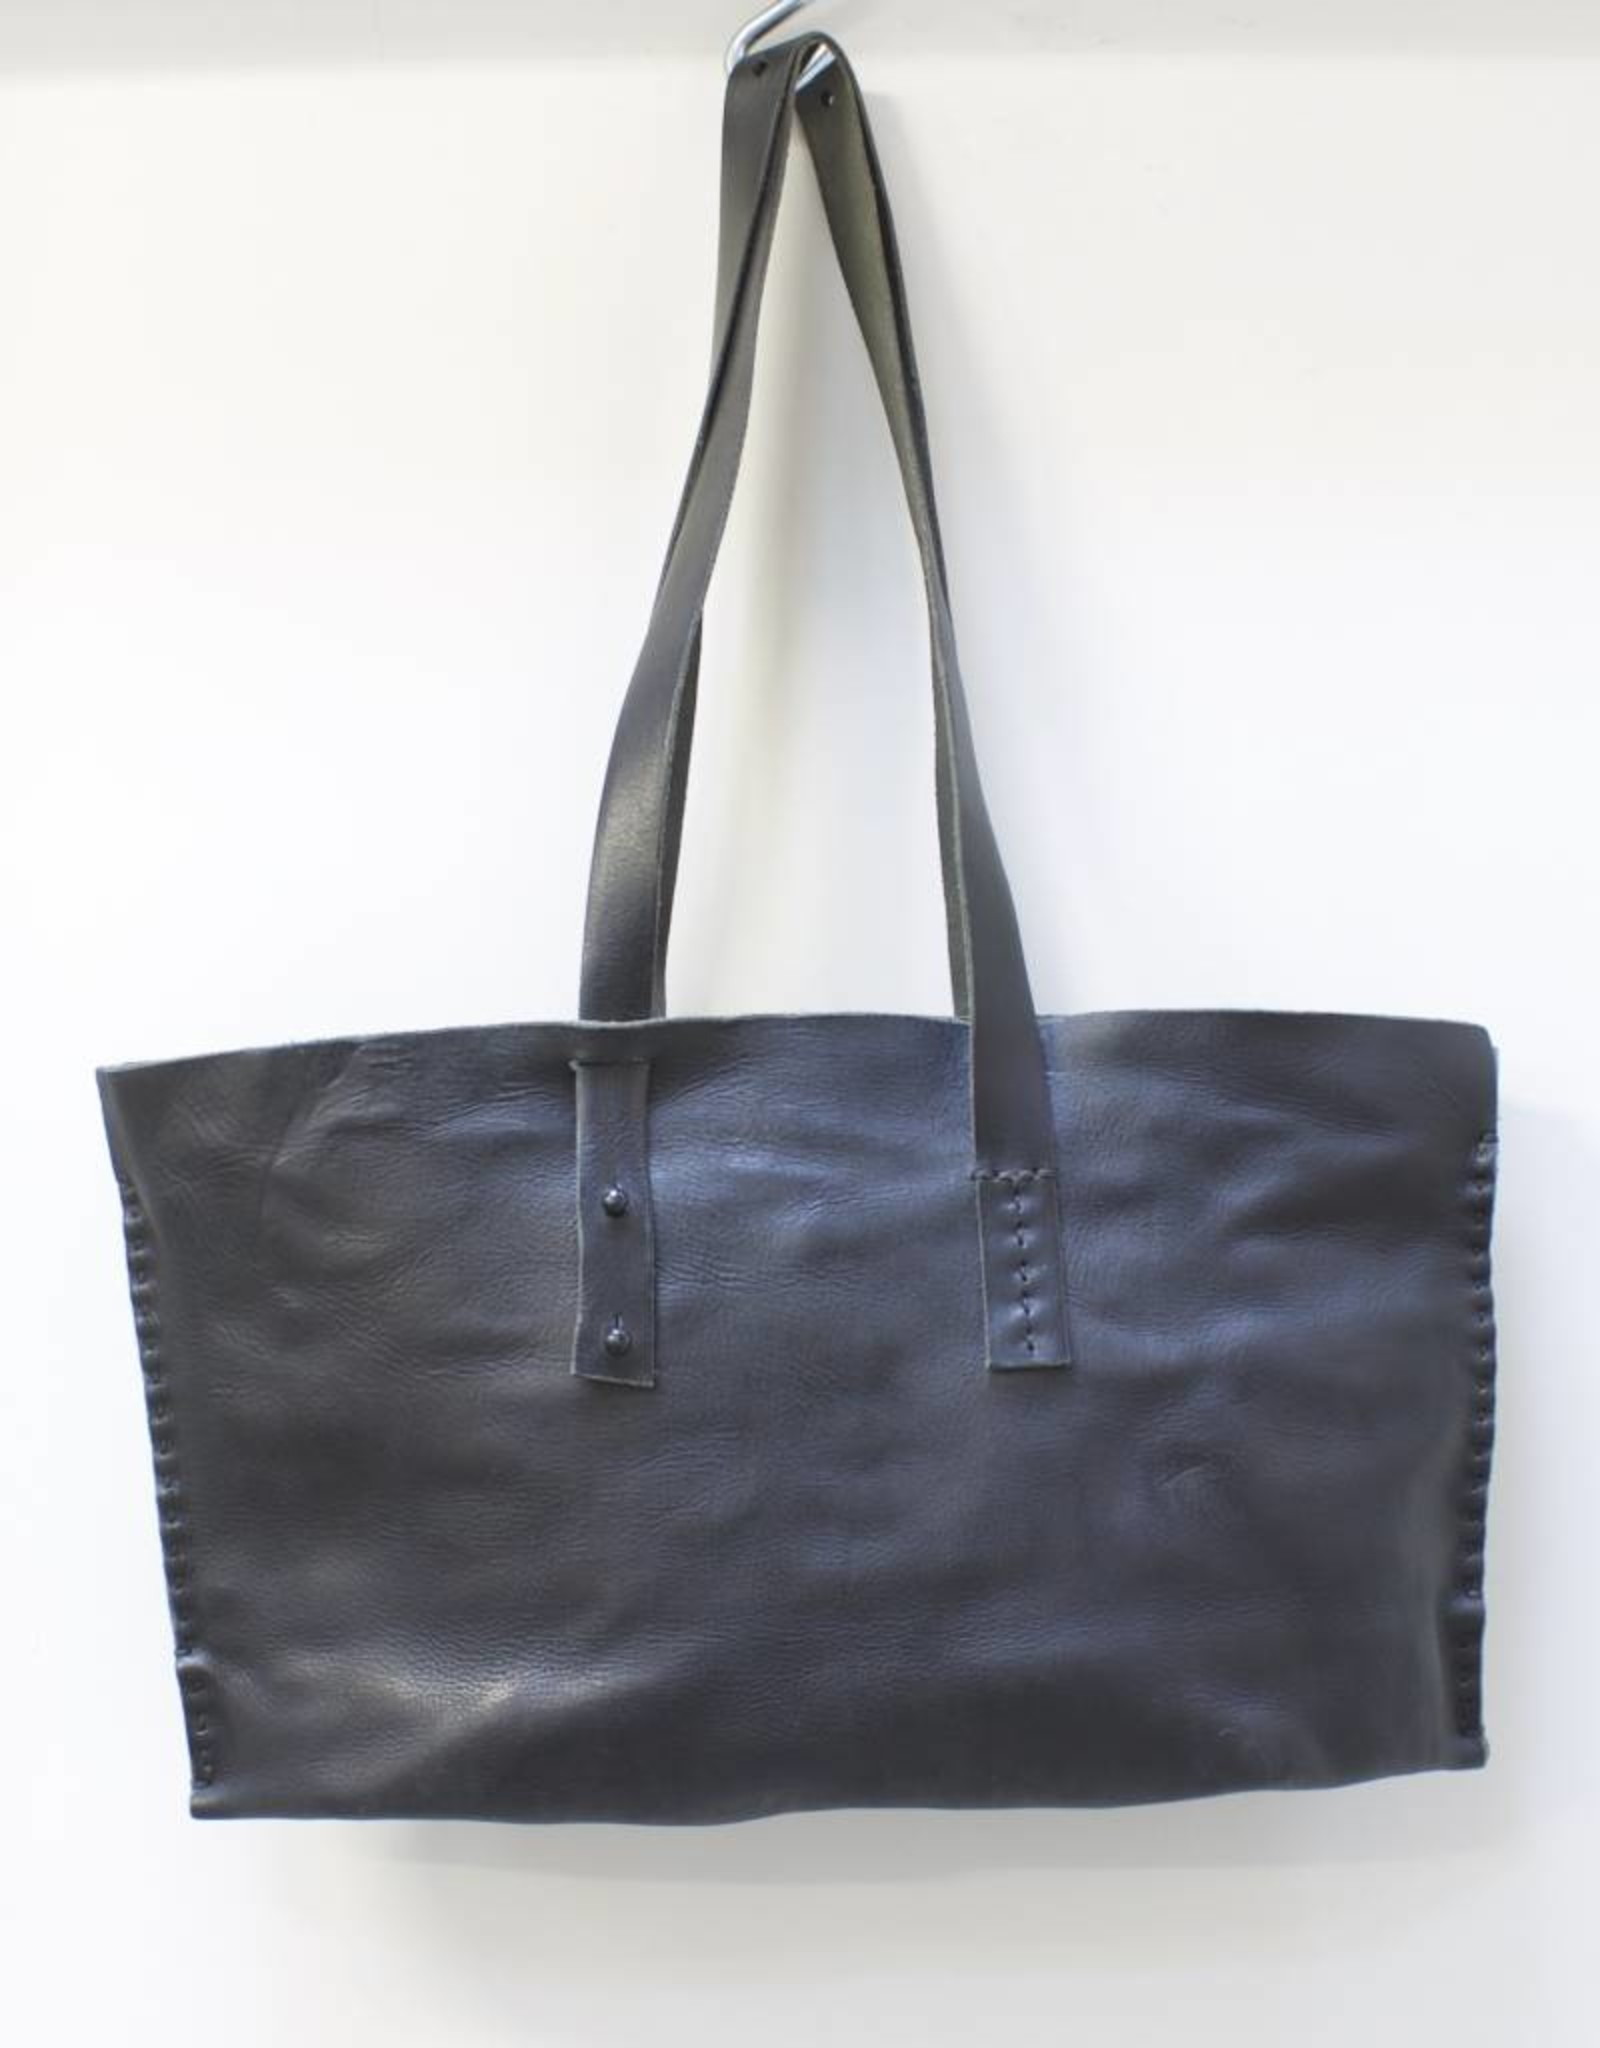 Engso Hand Crafted Wide Leather Bag with Double Strap - Black